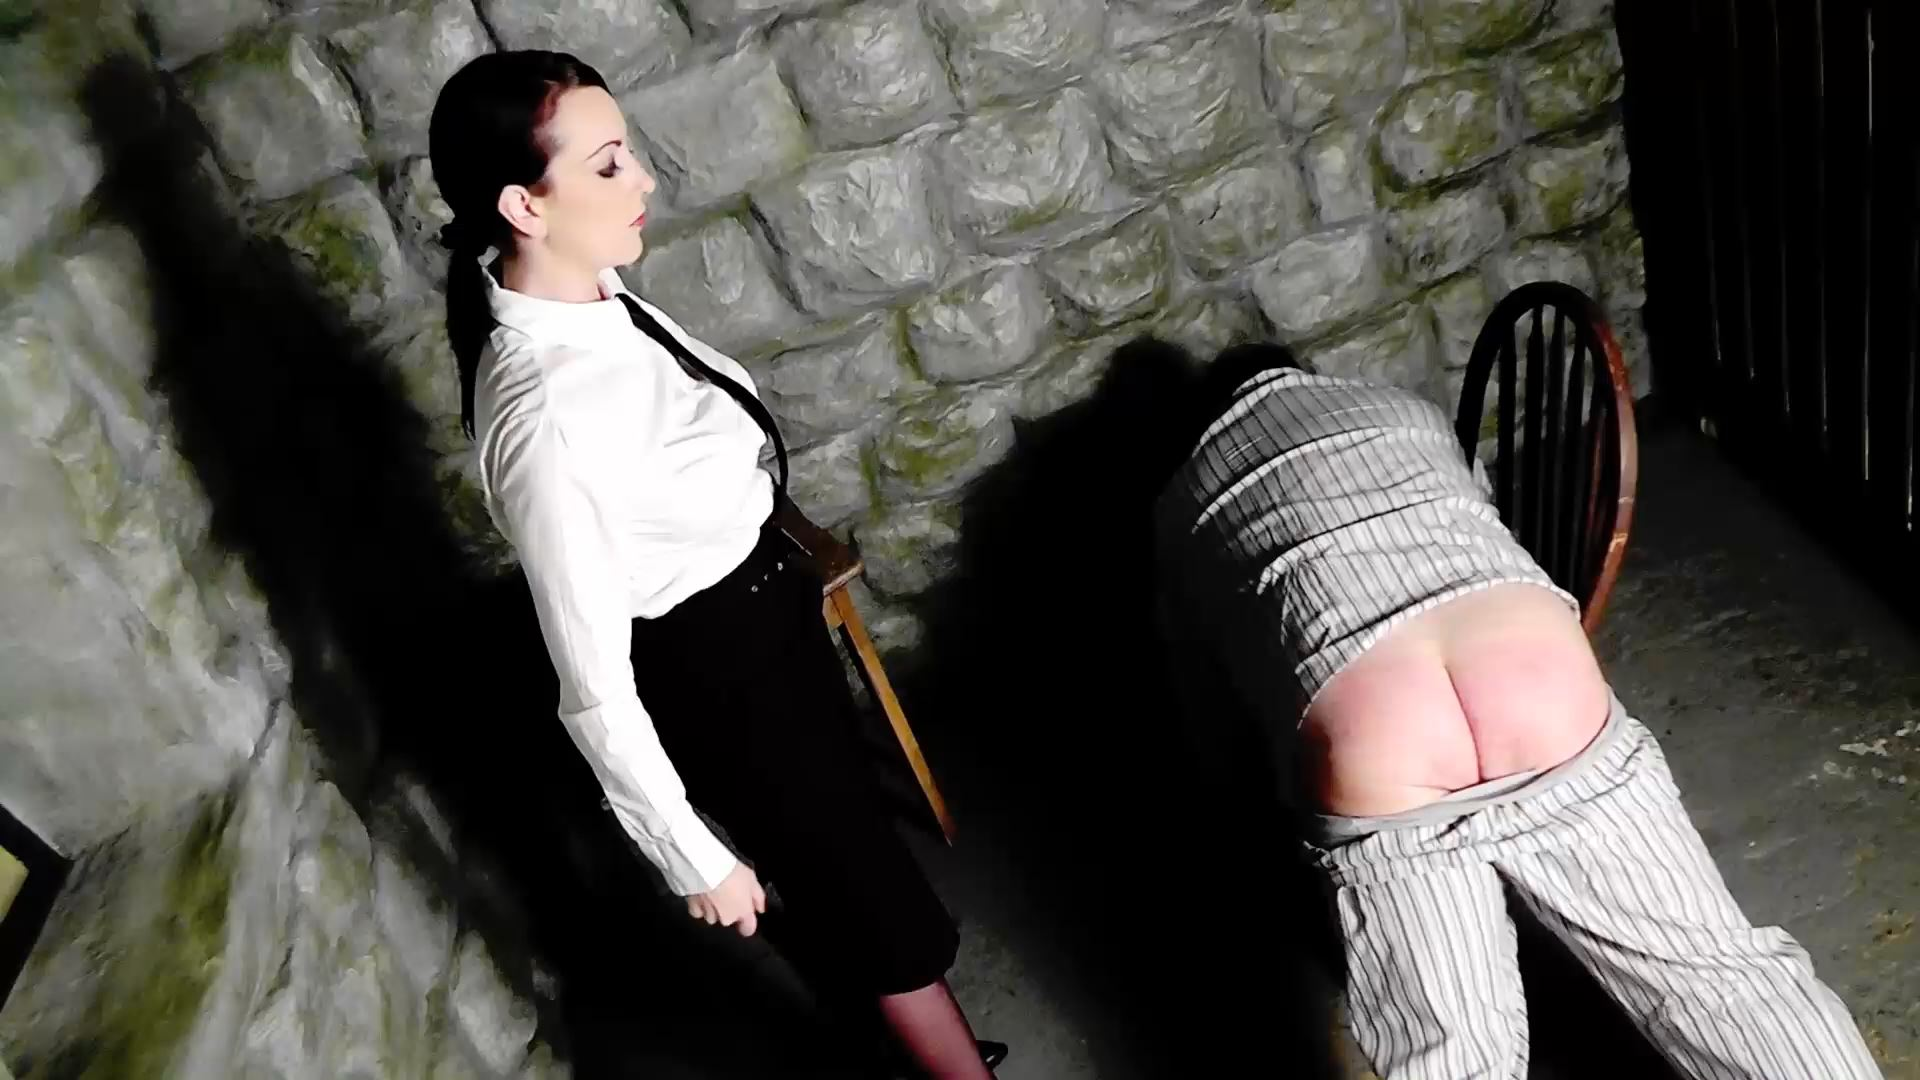 Jessica Wood In Scene: Prison fight - MISSJESSICAWOODVIDEOS - FULL HD/1080p/MP4